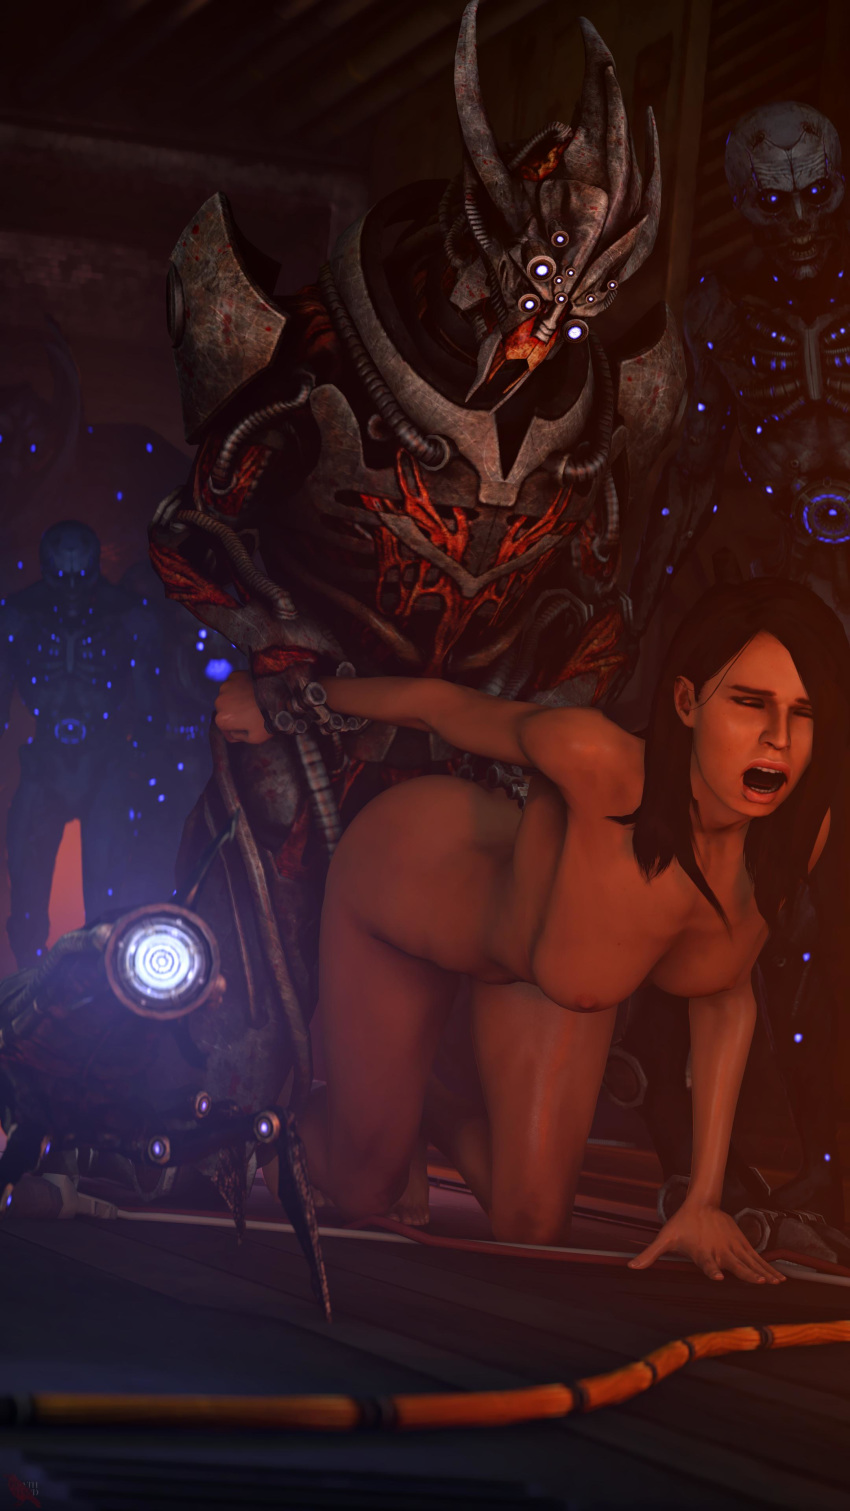 soni mass liara effect t Panty and stocking with garterbelt demons